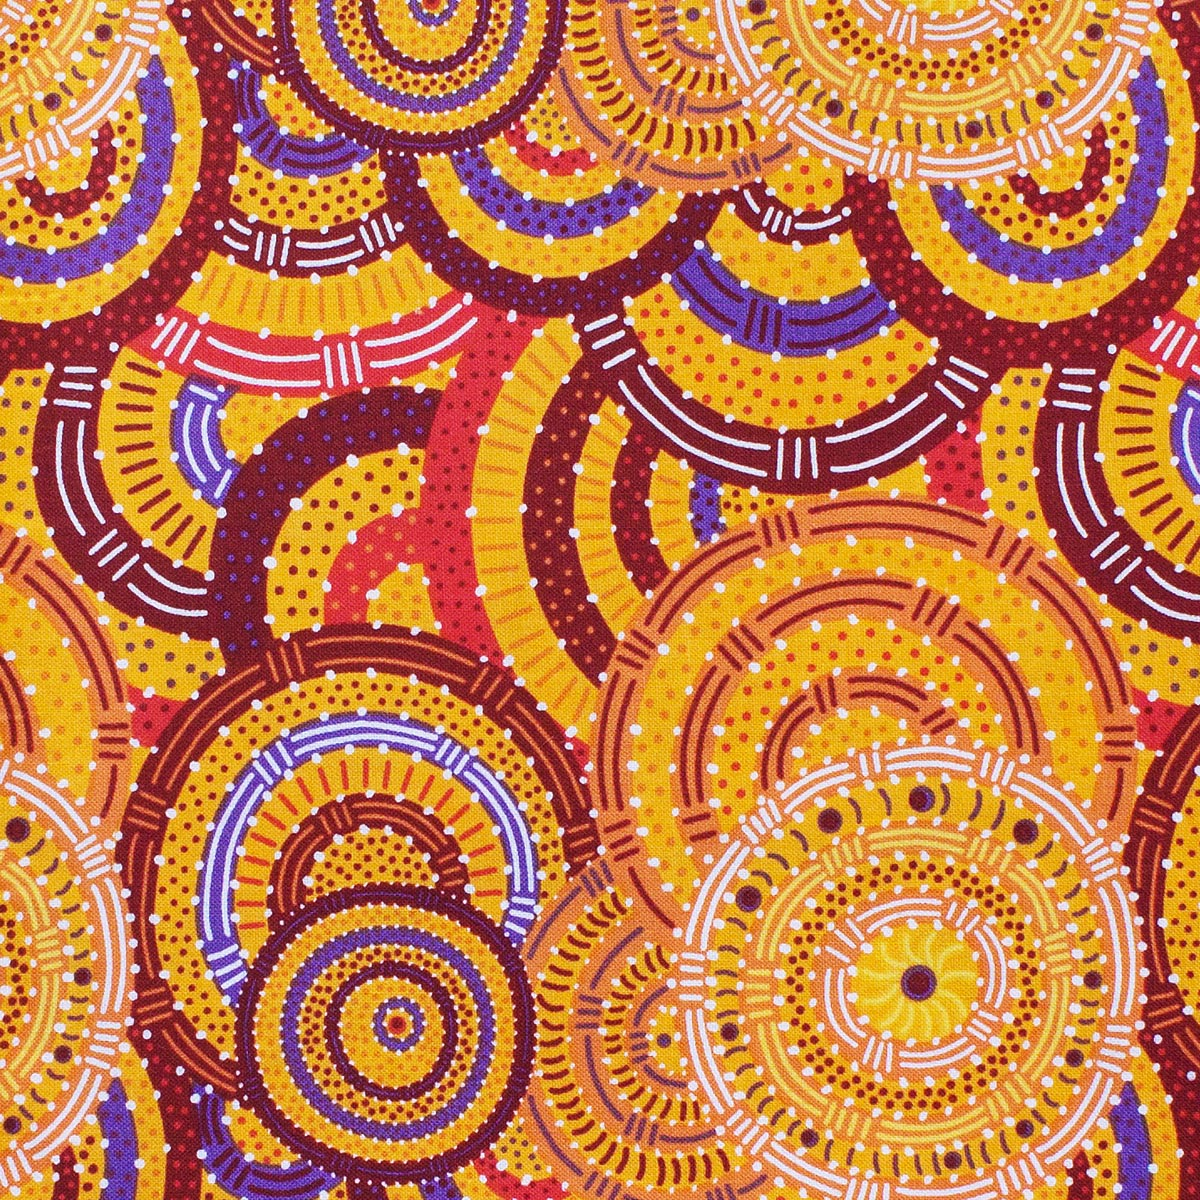 WOMEN'S BODY DREAMING MUSTARD by Aboriginal Artist CINDY WALLACE